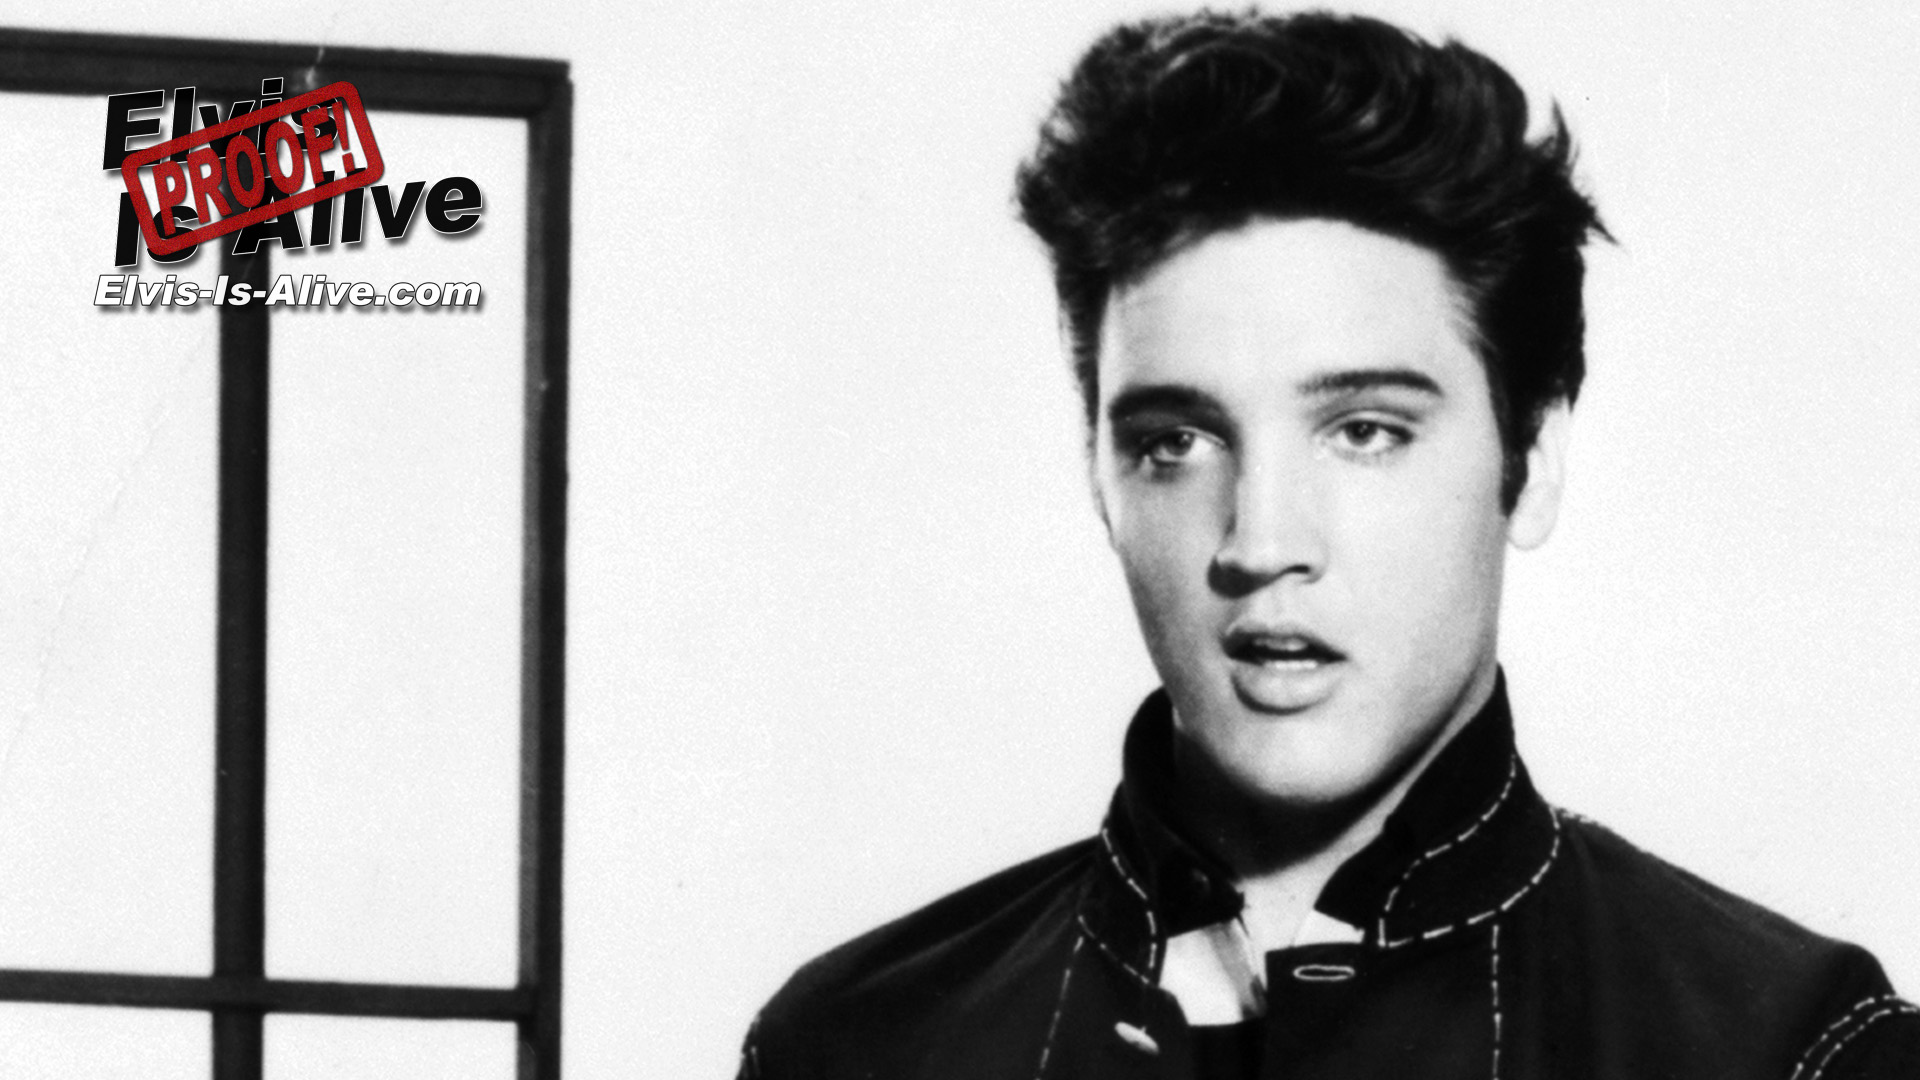 b82f0008e Elvis Presley Men's Clothing, Shoes and Accessories